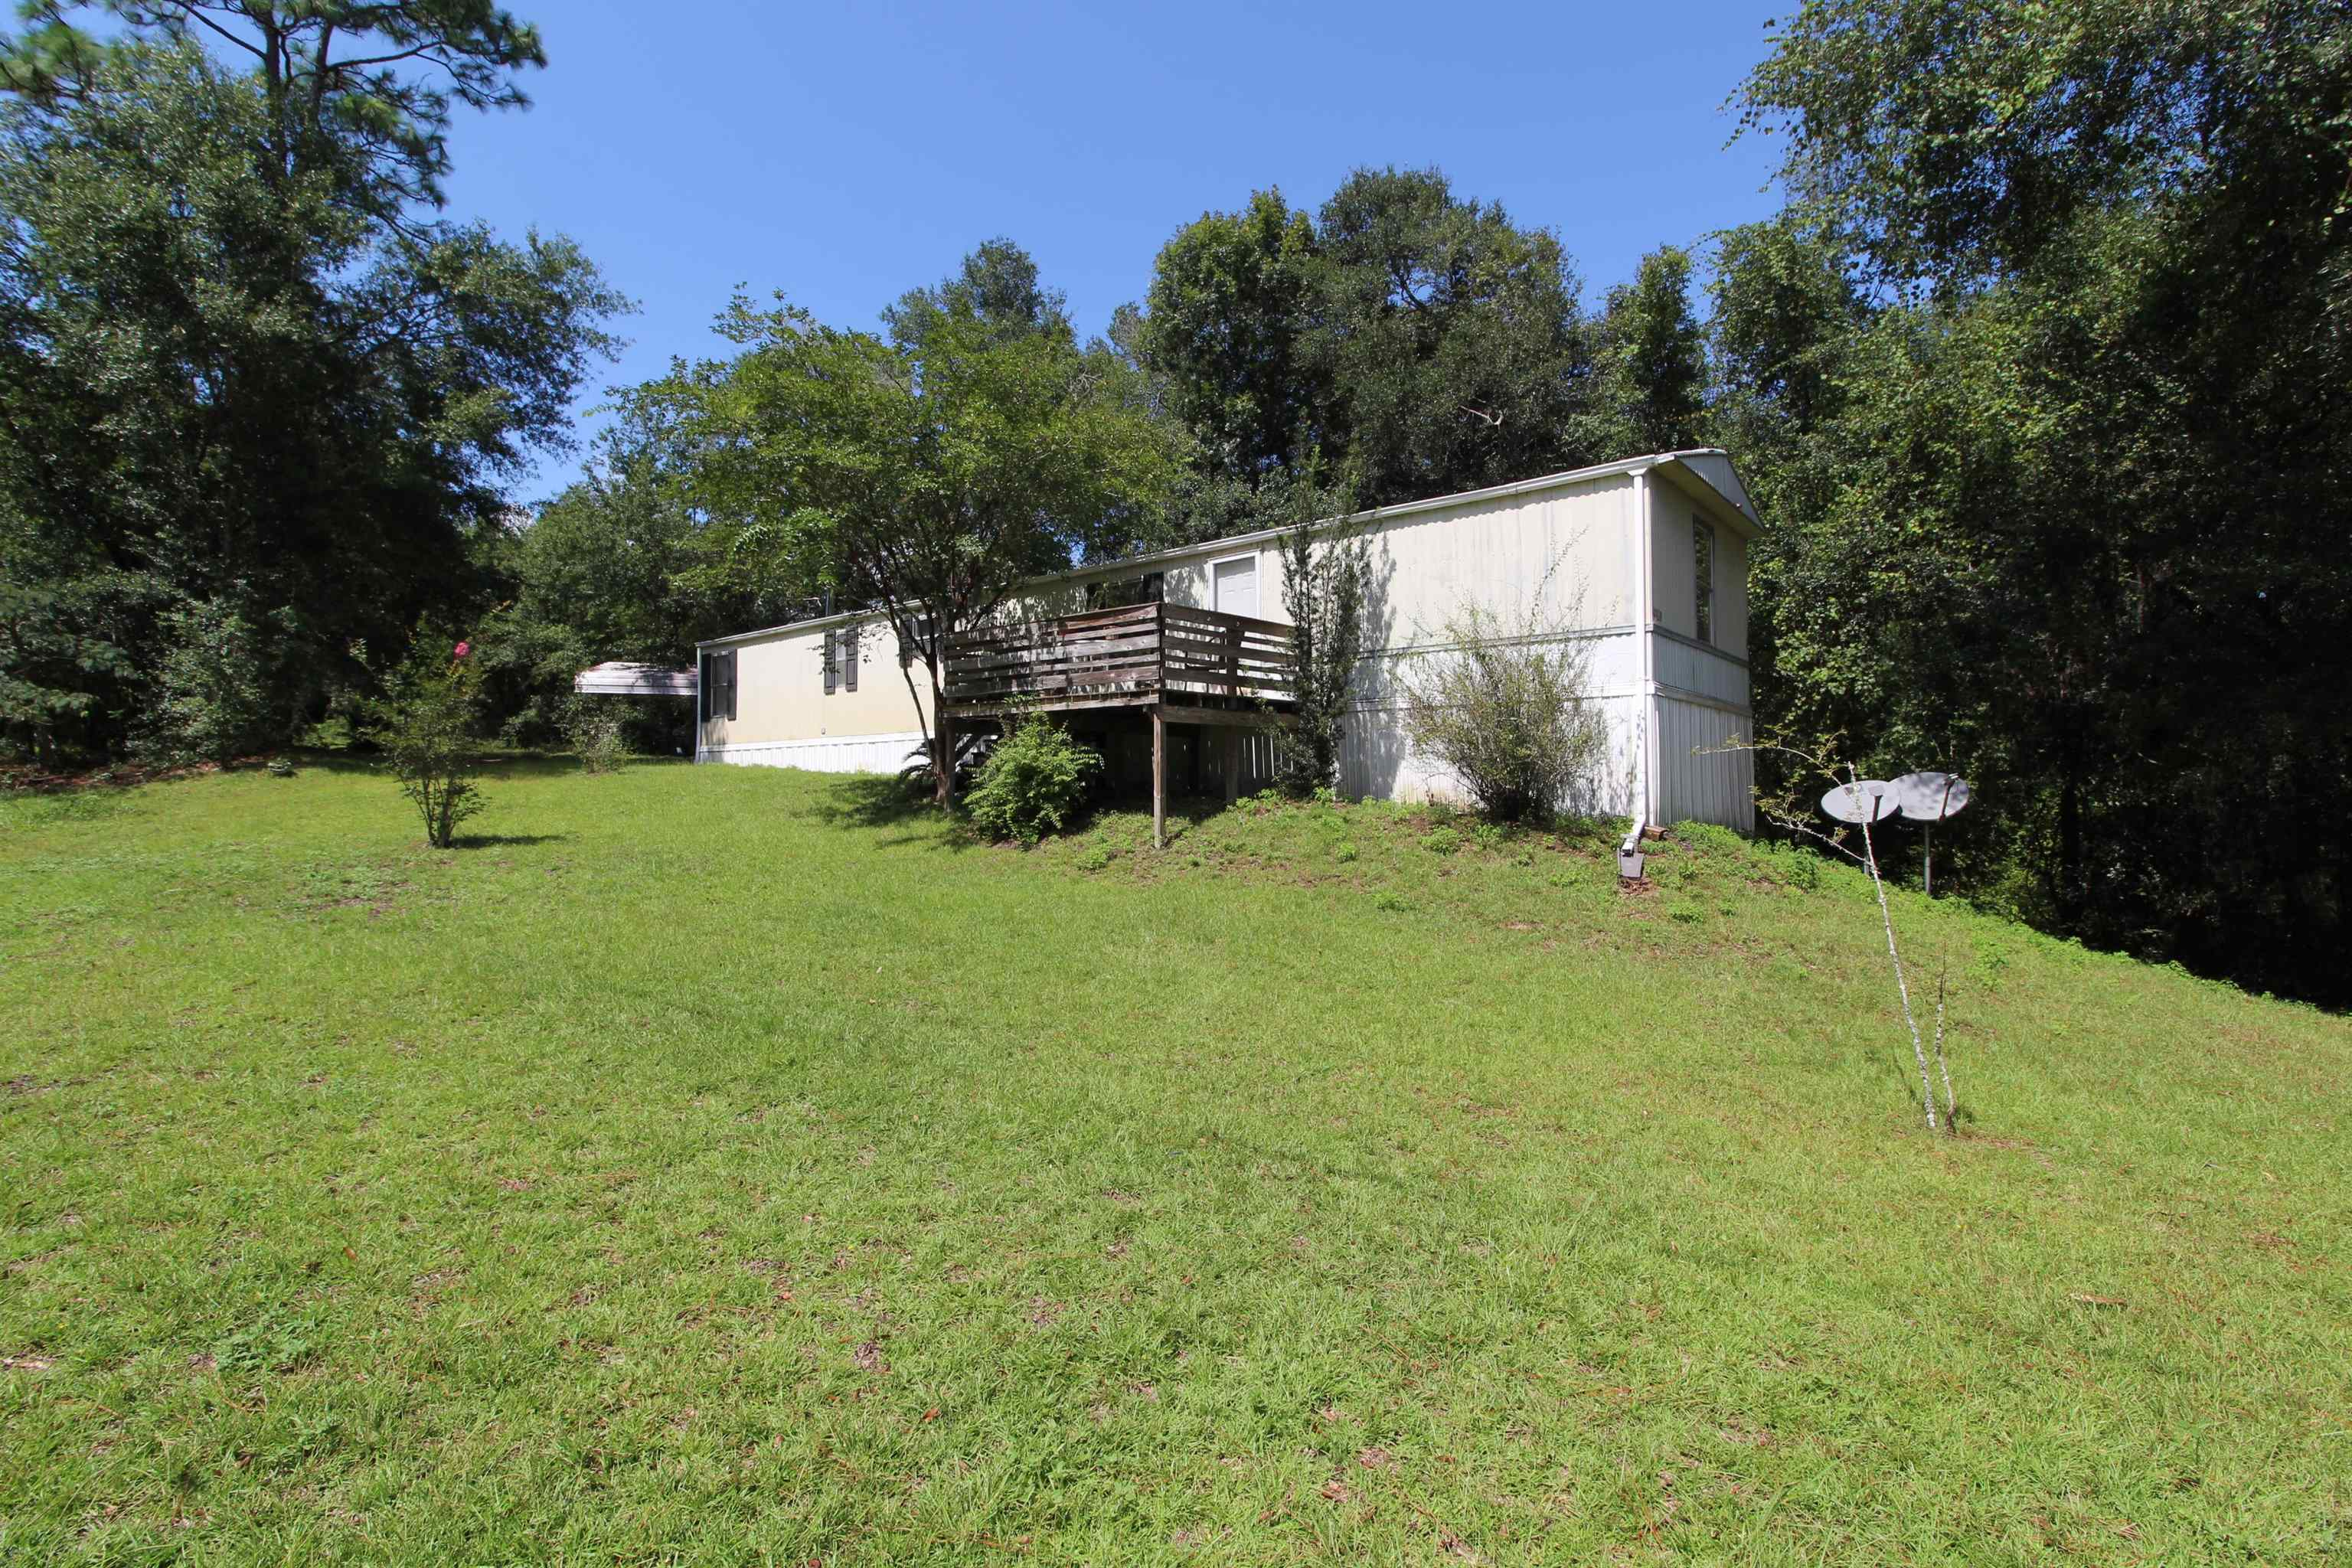 $72,000 - 2Br/2Ba -  for Sale in Silver Lake, Tallahassee